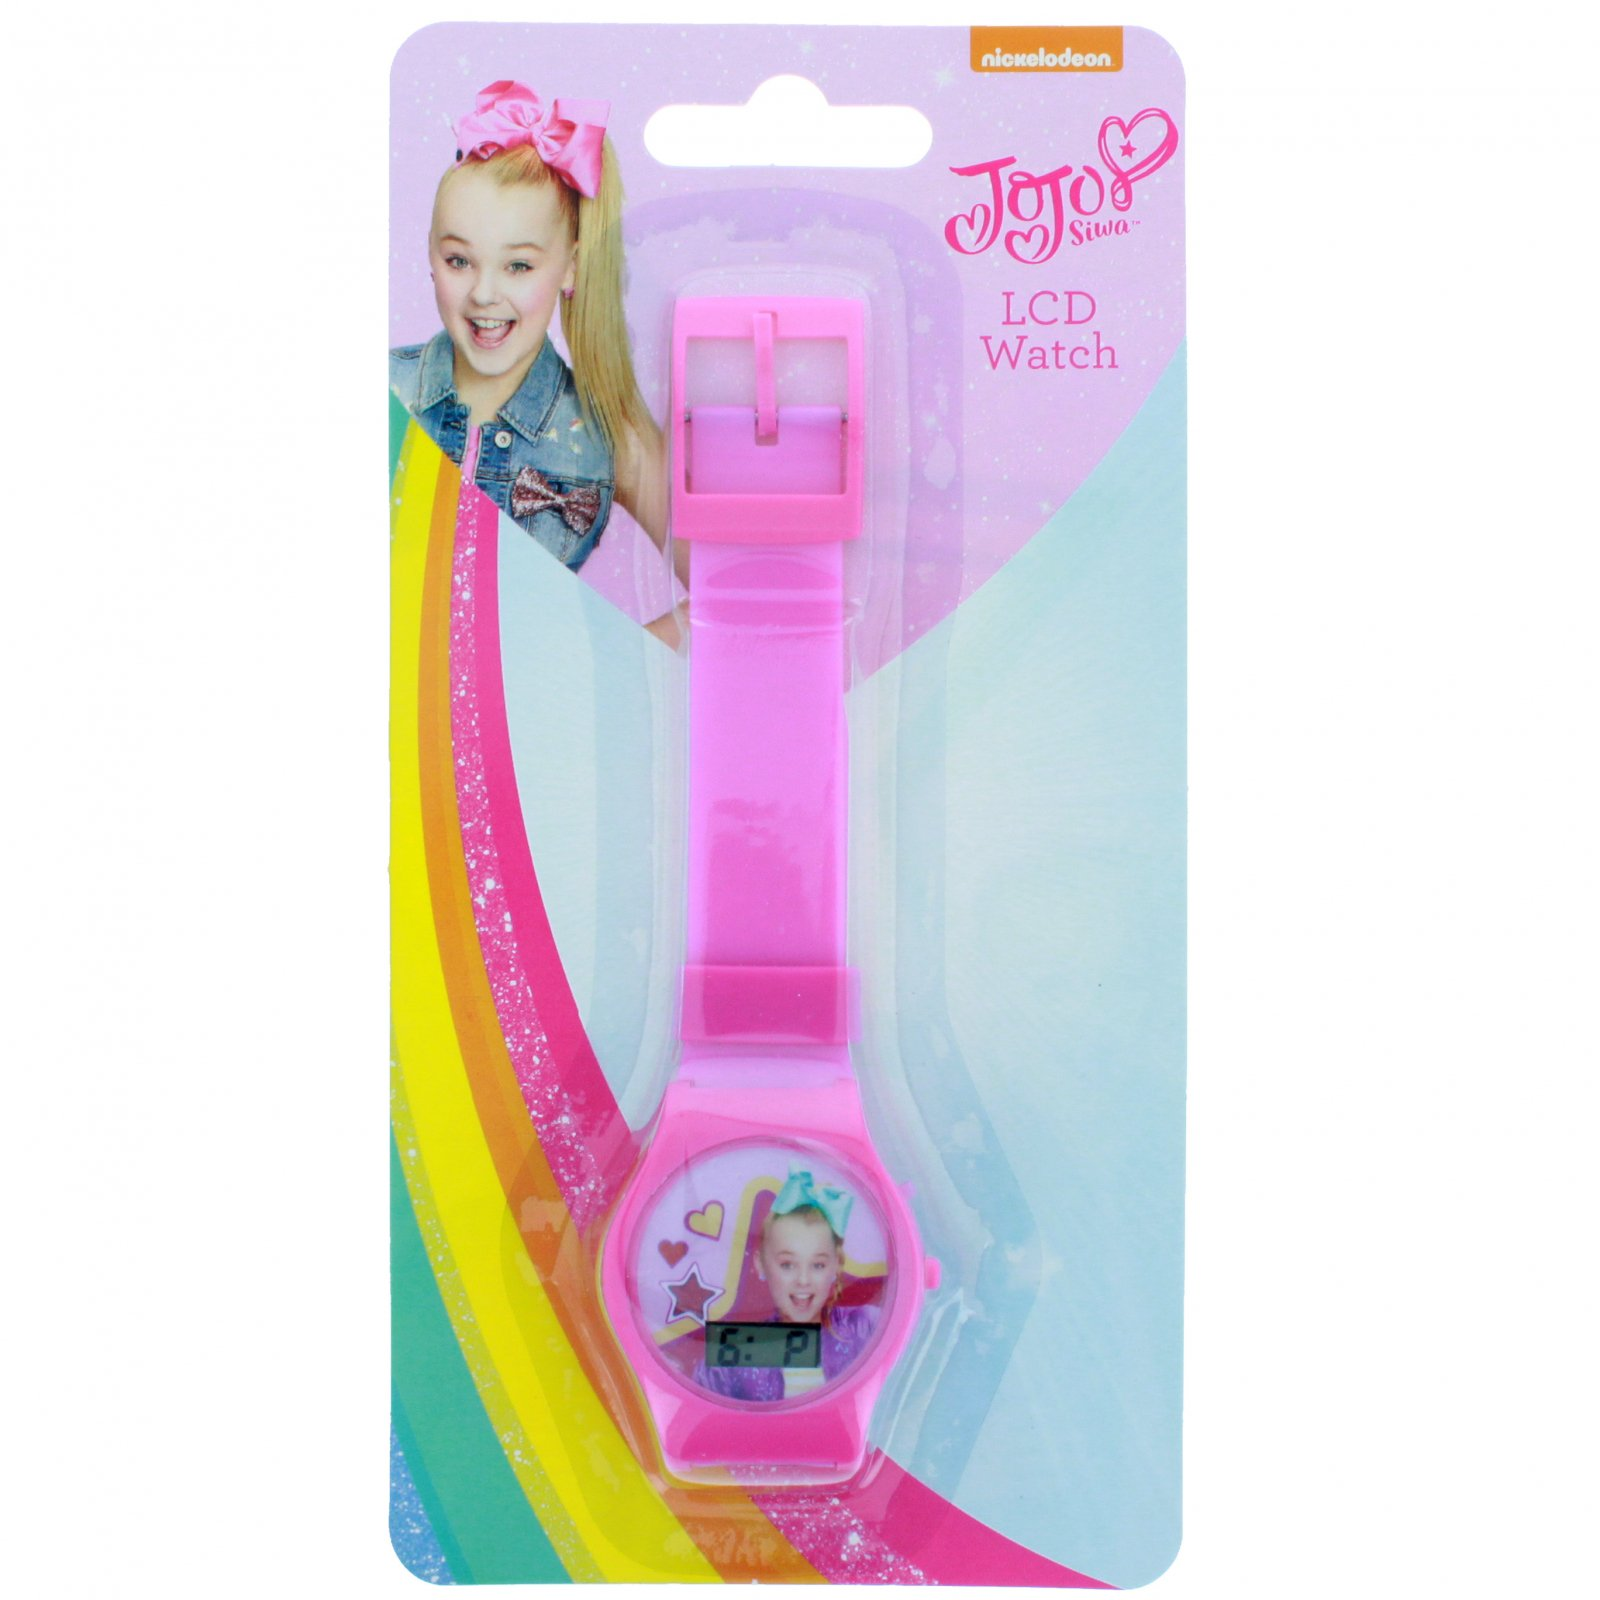 Nickelodeon JoJo Siwa LCD Digital Wrist Watch and Timer Pink